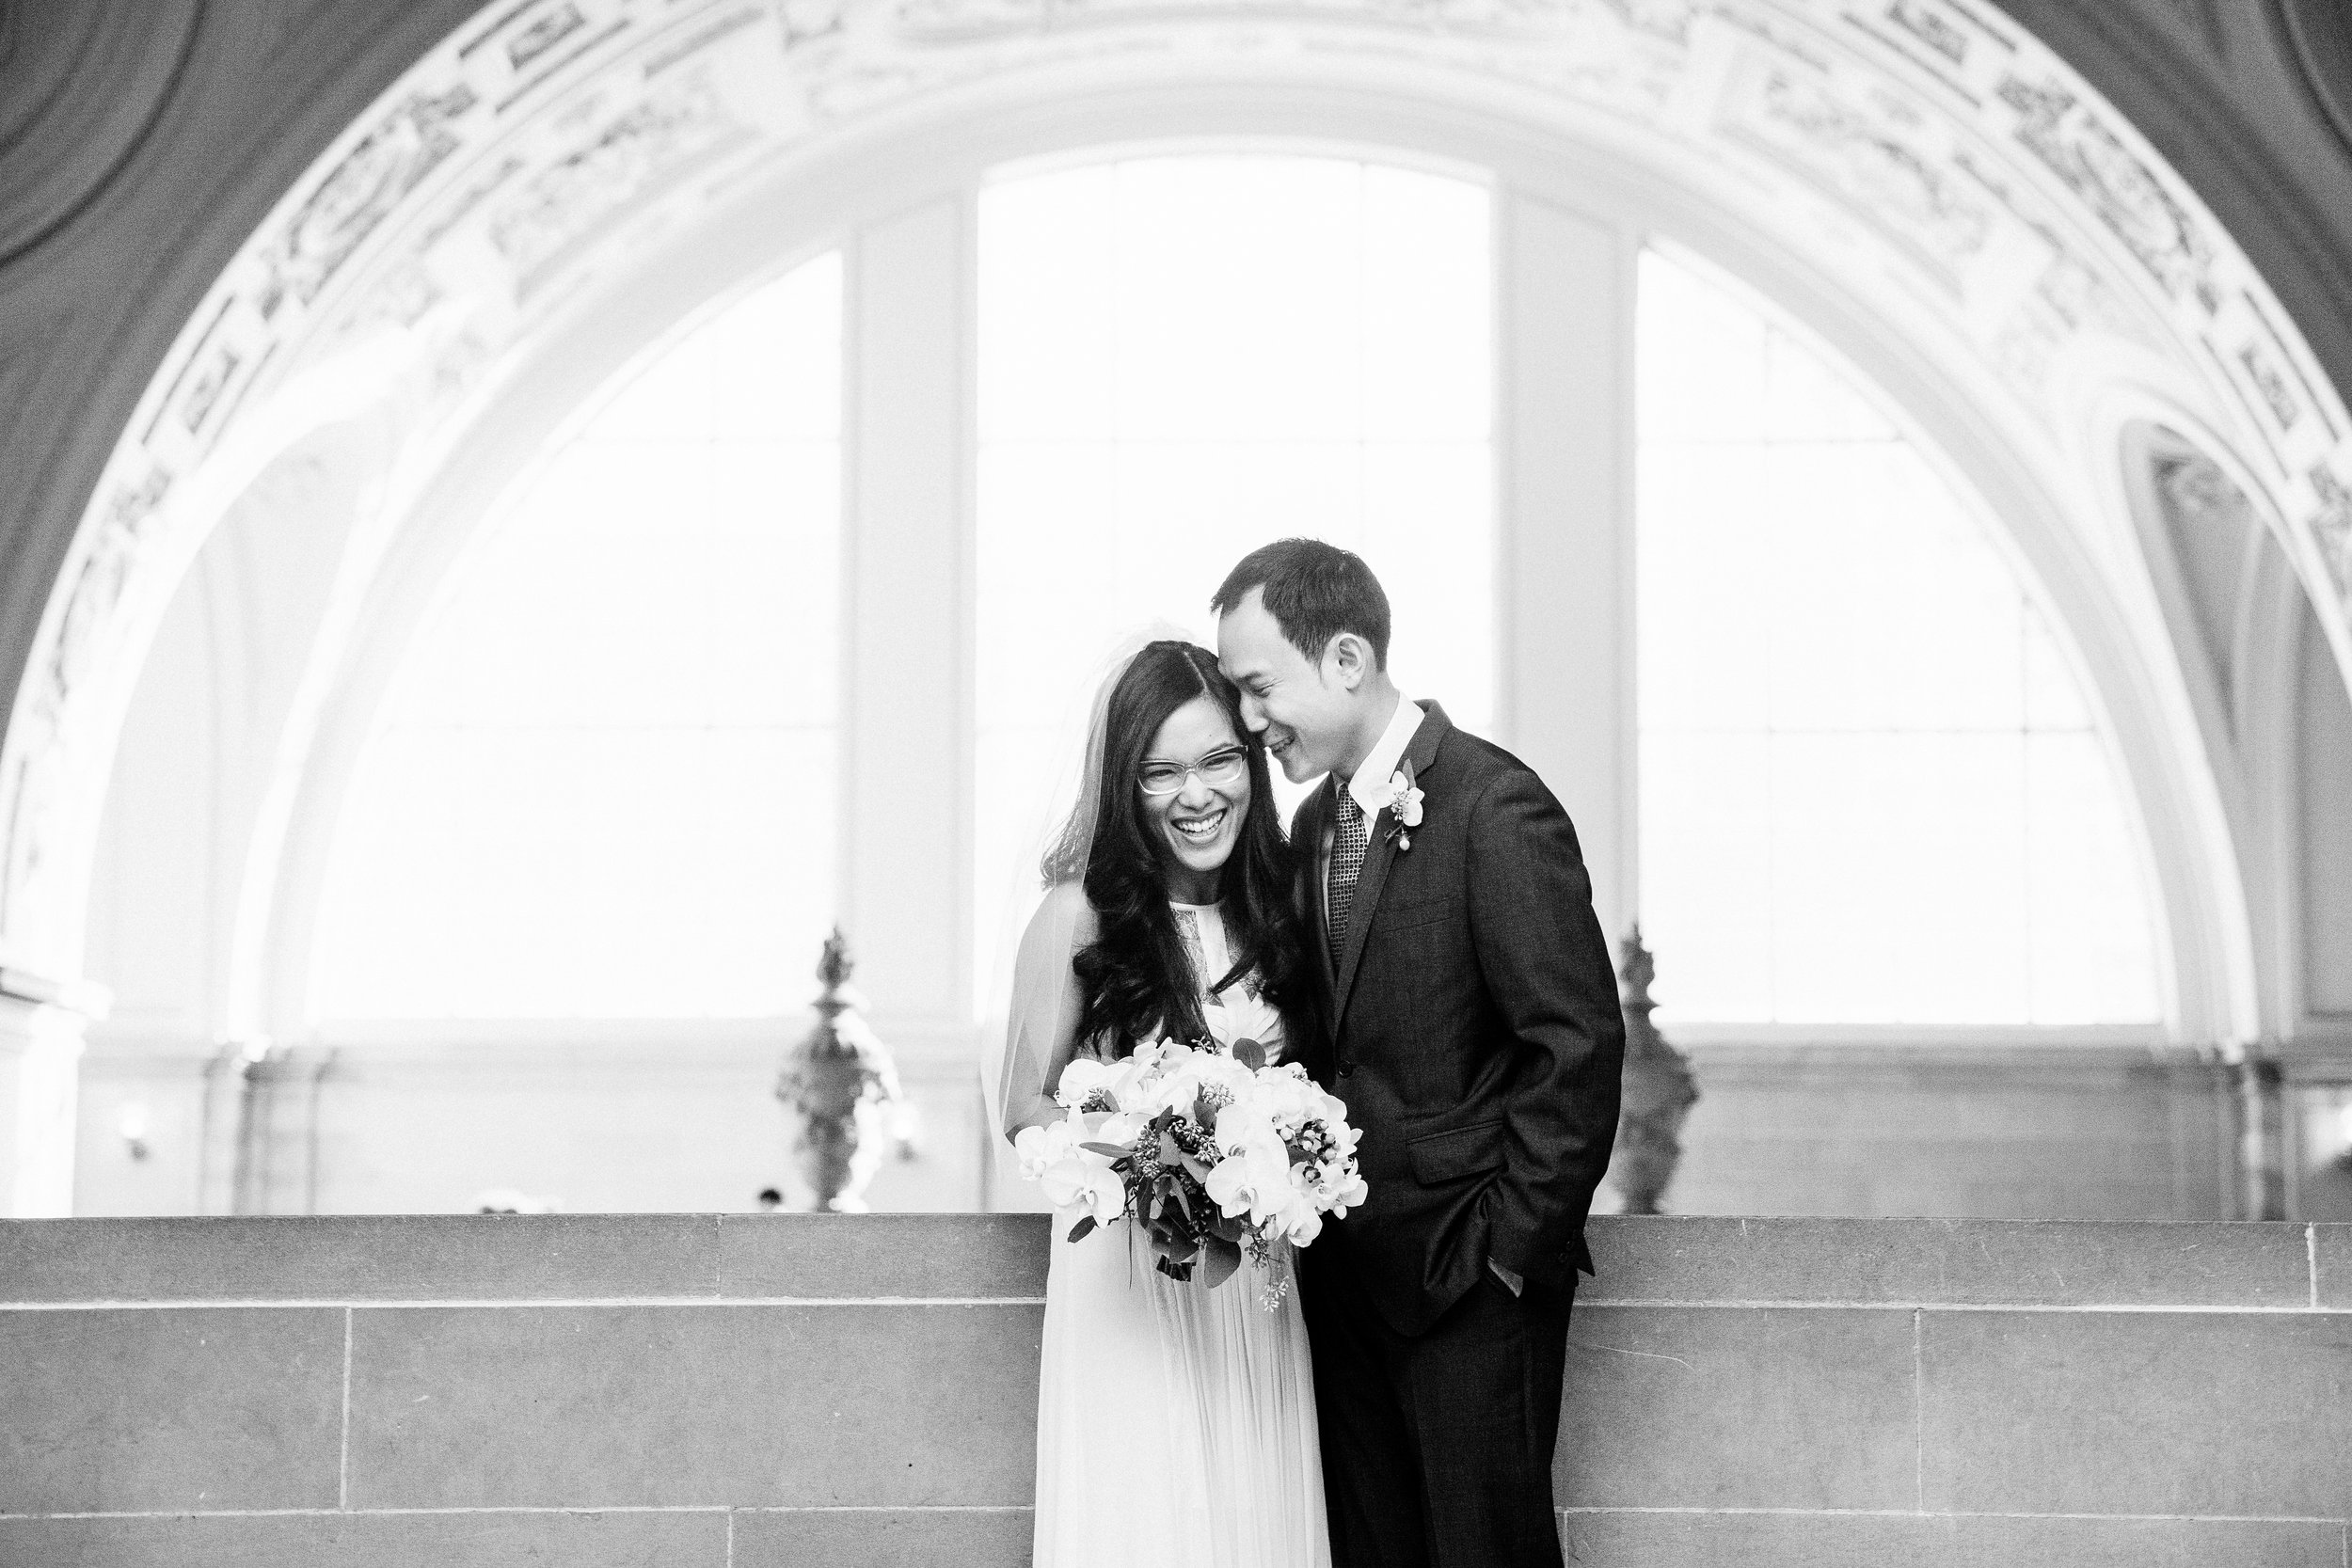 020_janaeshieldsphotography_sanfrancisco_cityhall_weddings.jpg